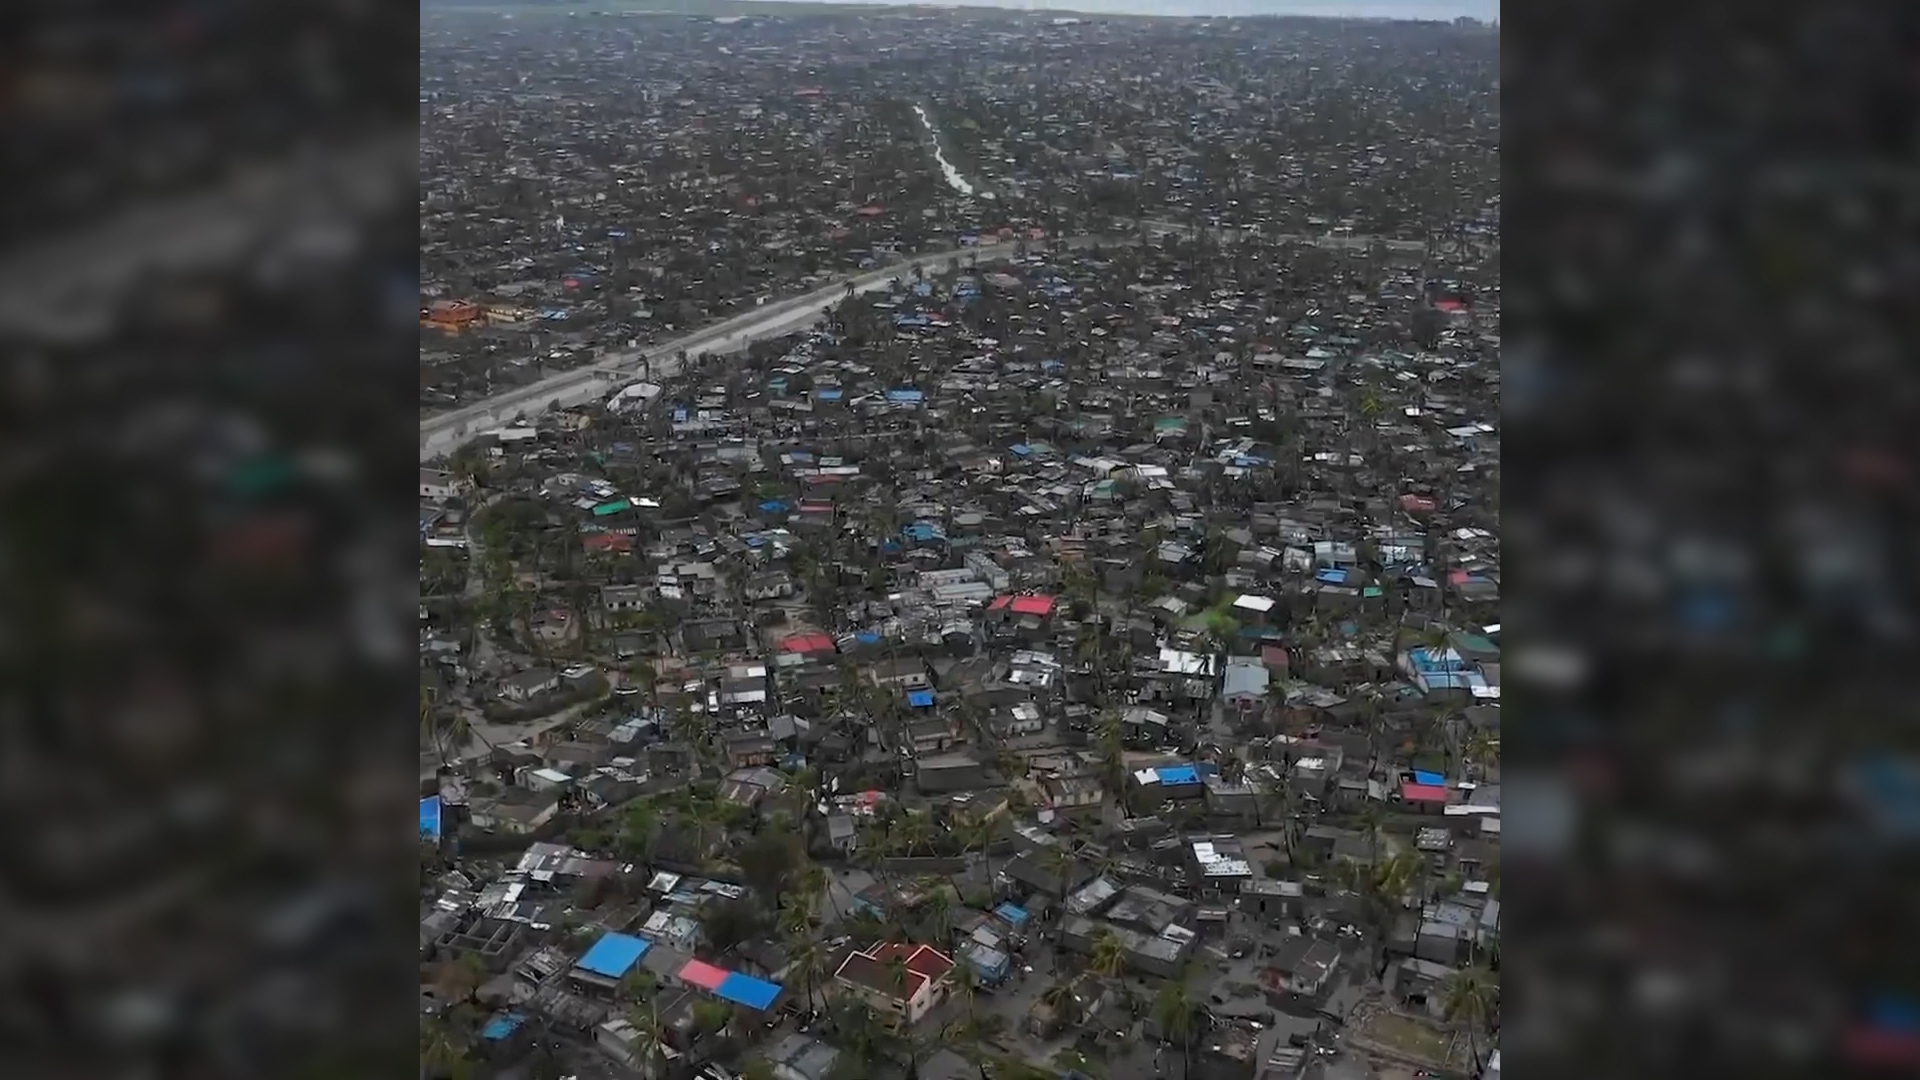 'Everything is destroyed': Mozambique fears massive human toll from Cyclone Idai